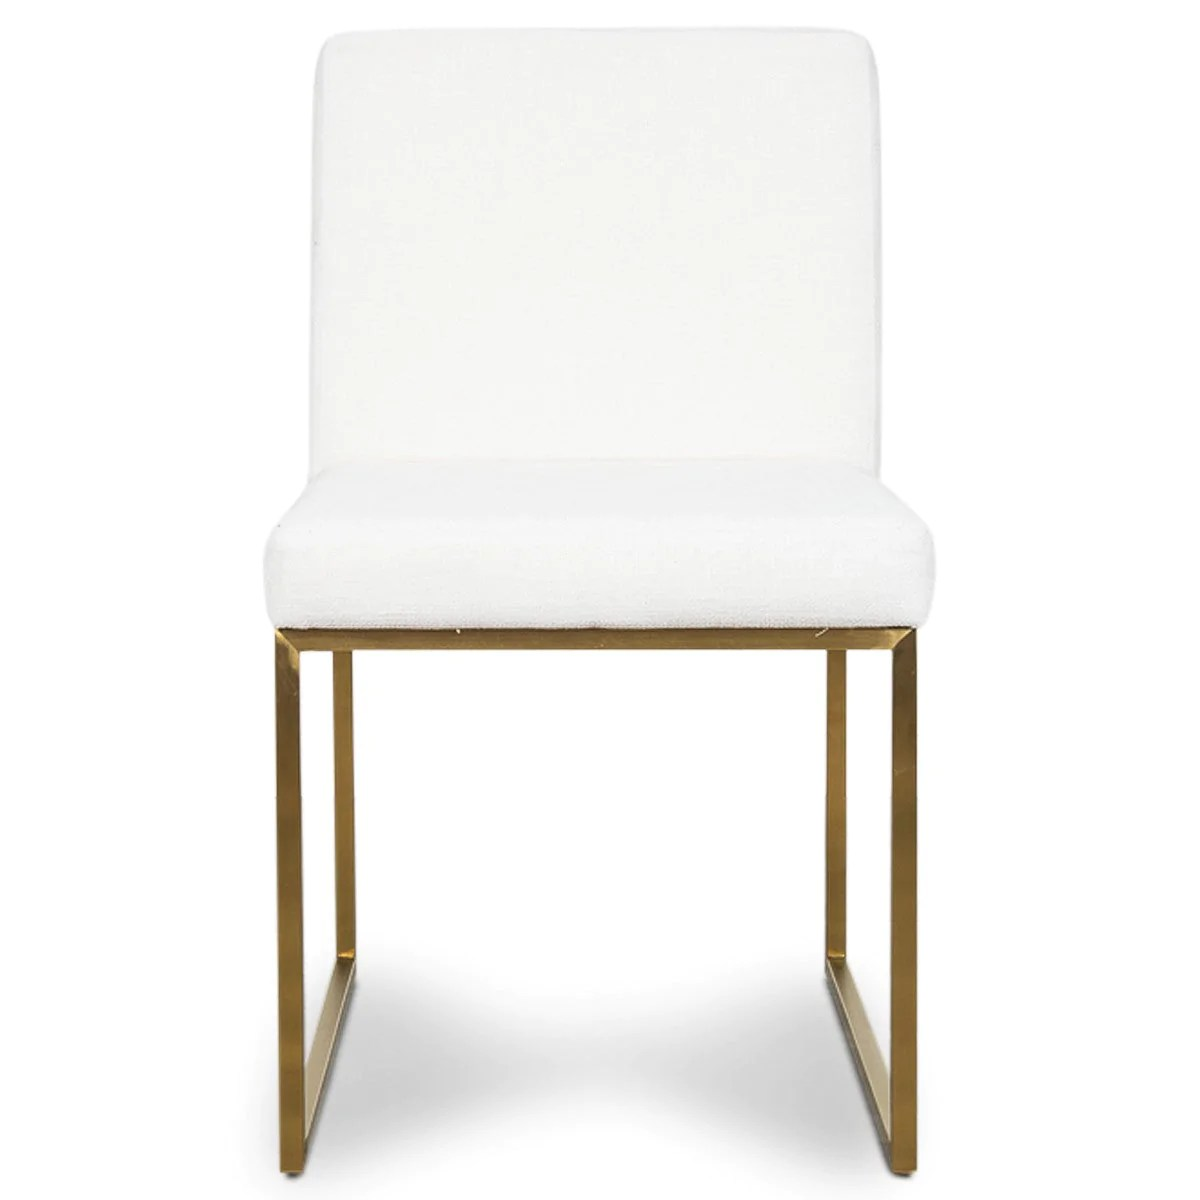 modern art chair covers and linens old fashioned dining room chairs 007 goldfinger white linen modshop